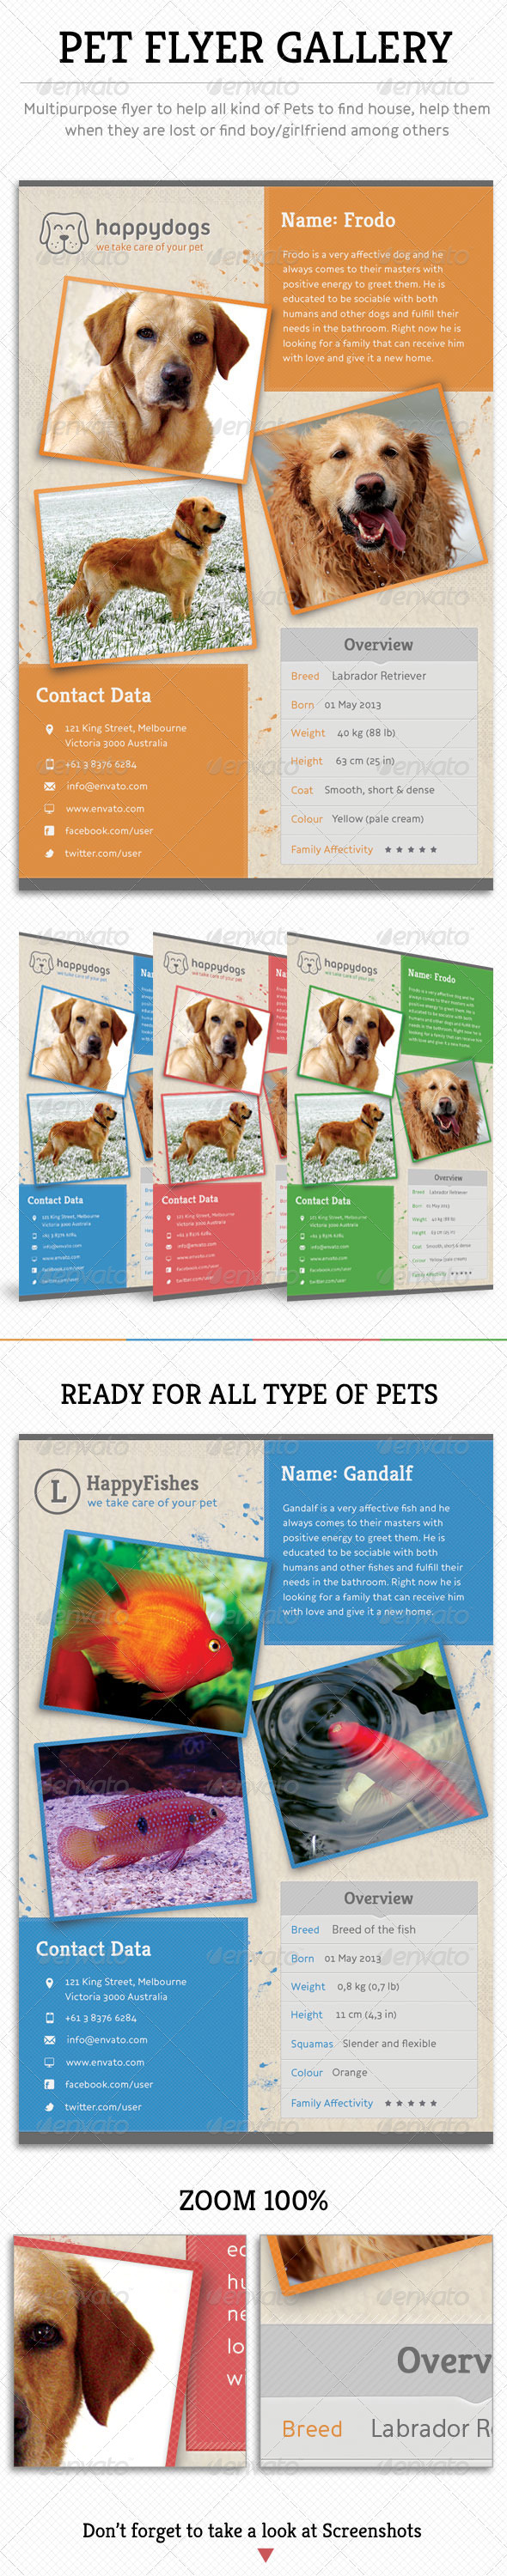 GraphicRiver Pet Flyer Gallery 5217765